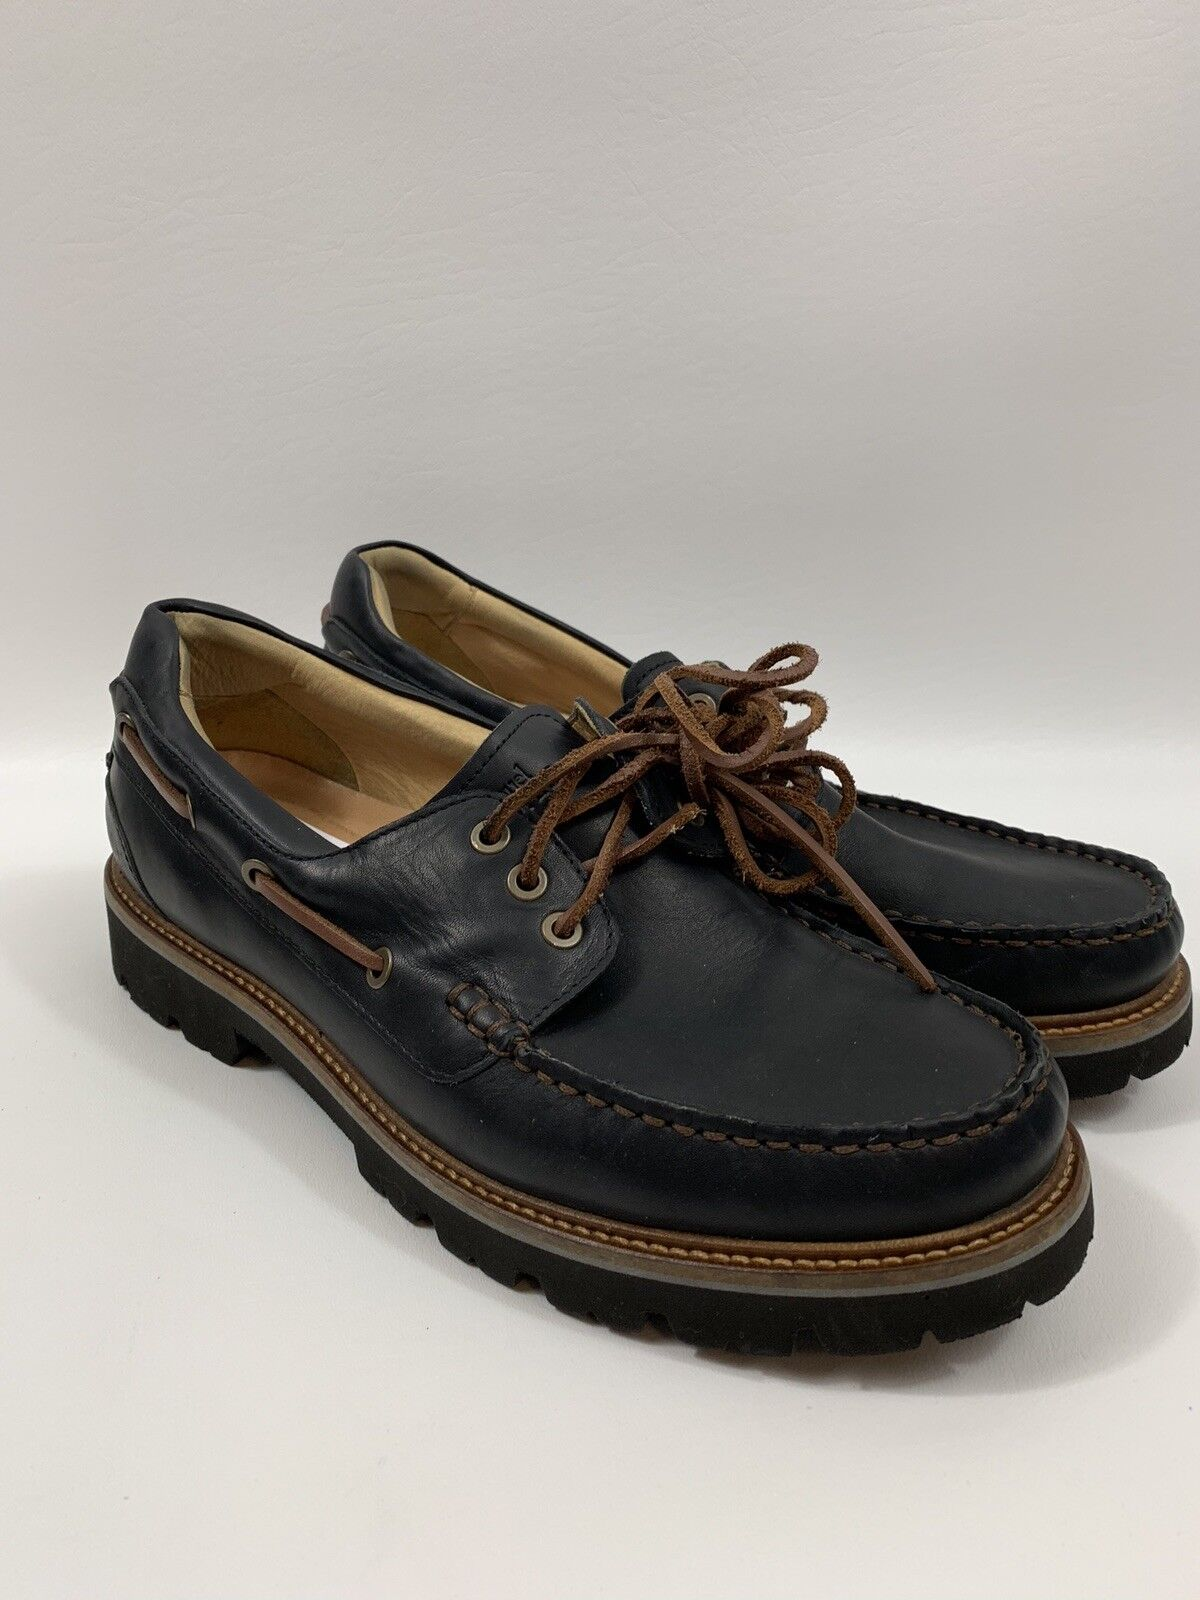 Samuel Hubbard Camplight Water Resistant Boat shoes Size 10 M